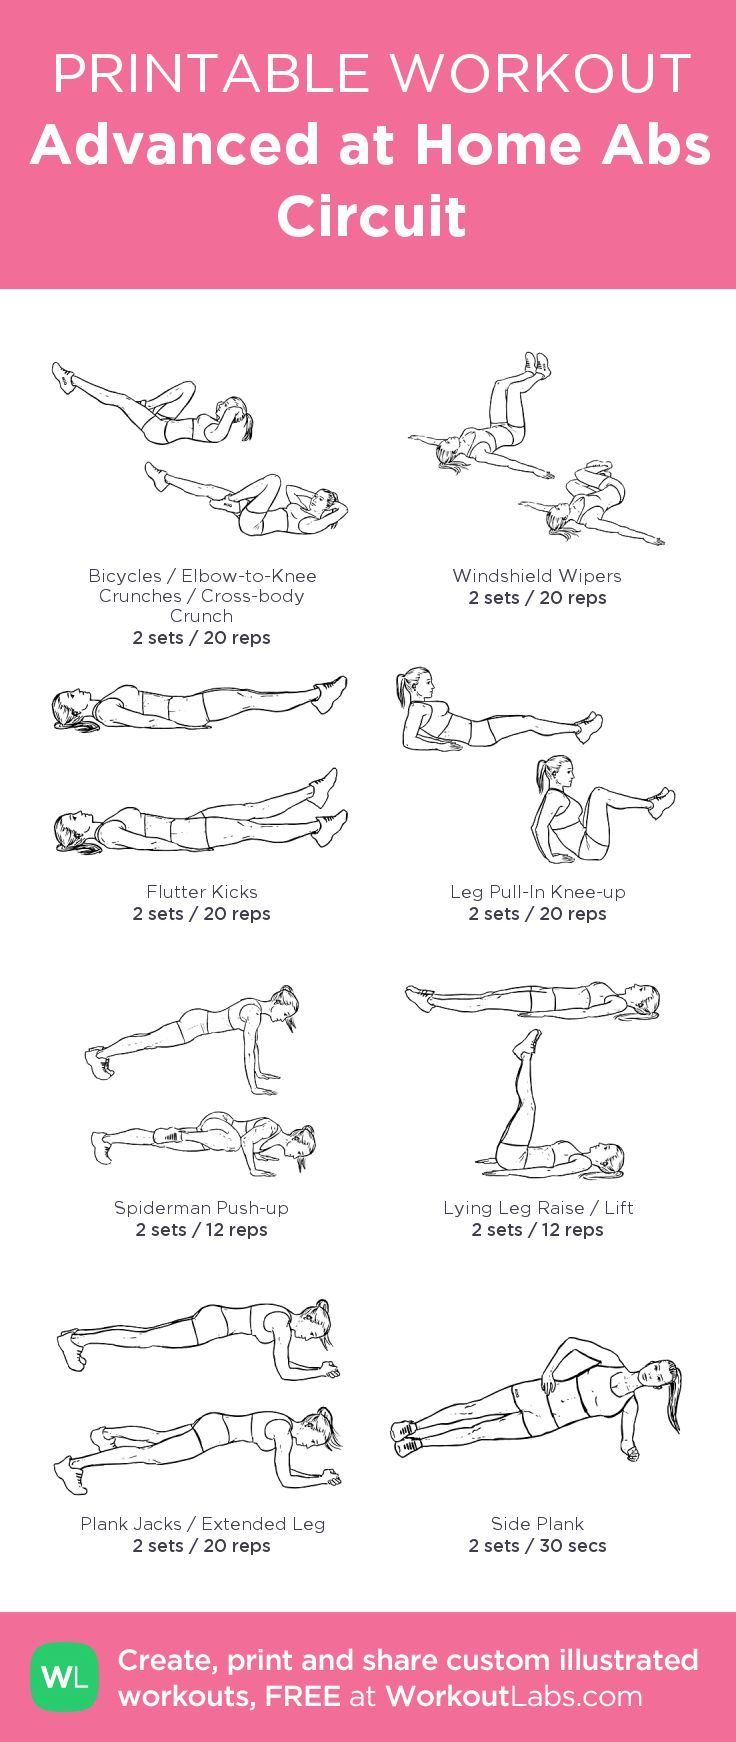 6 Core-Strengthening Exercises